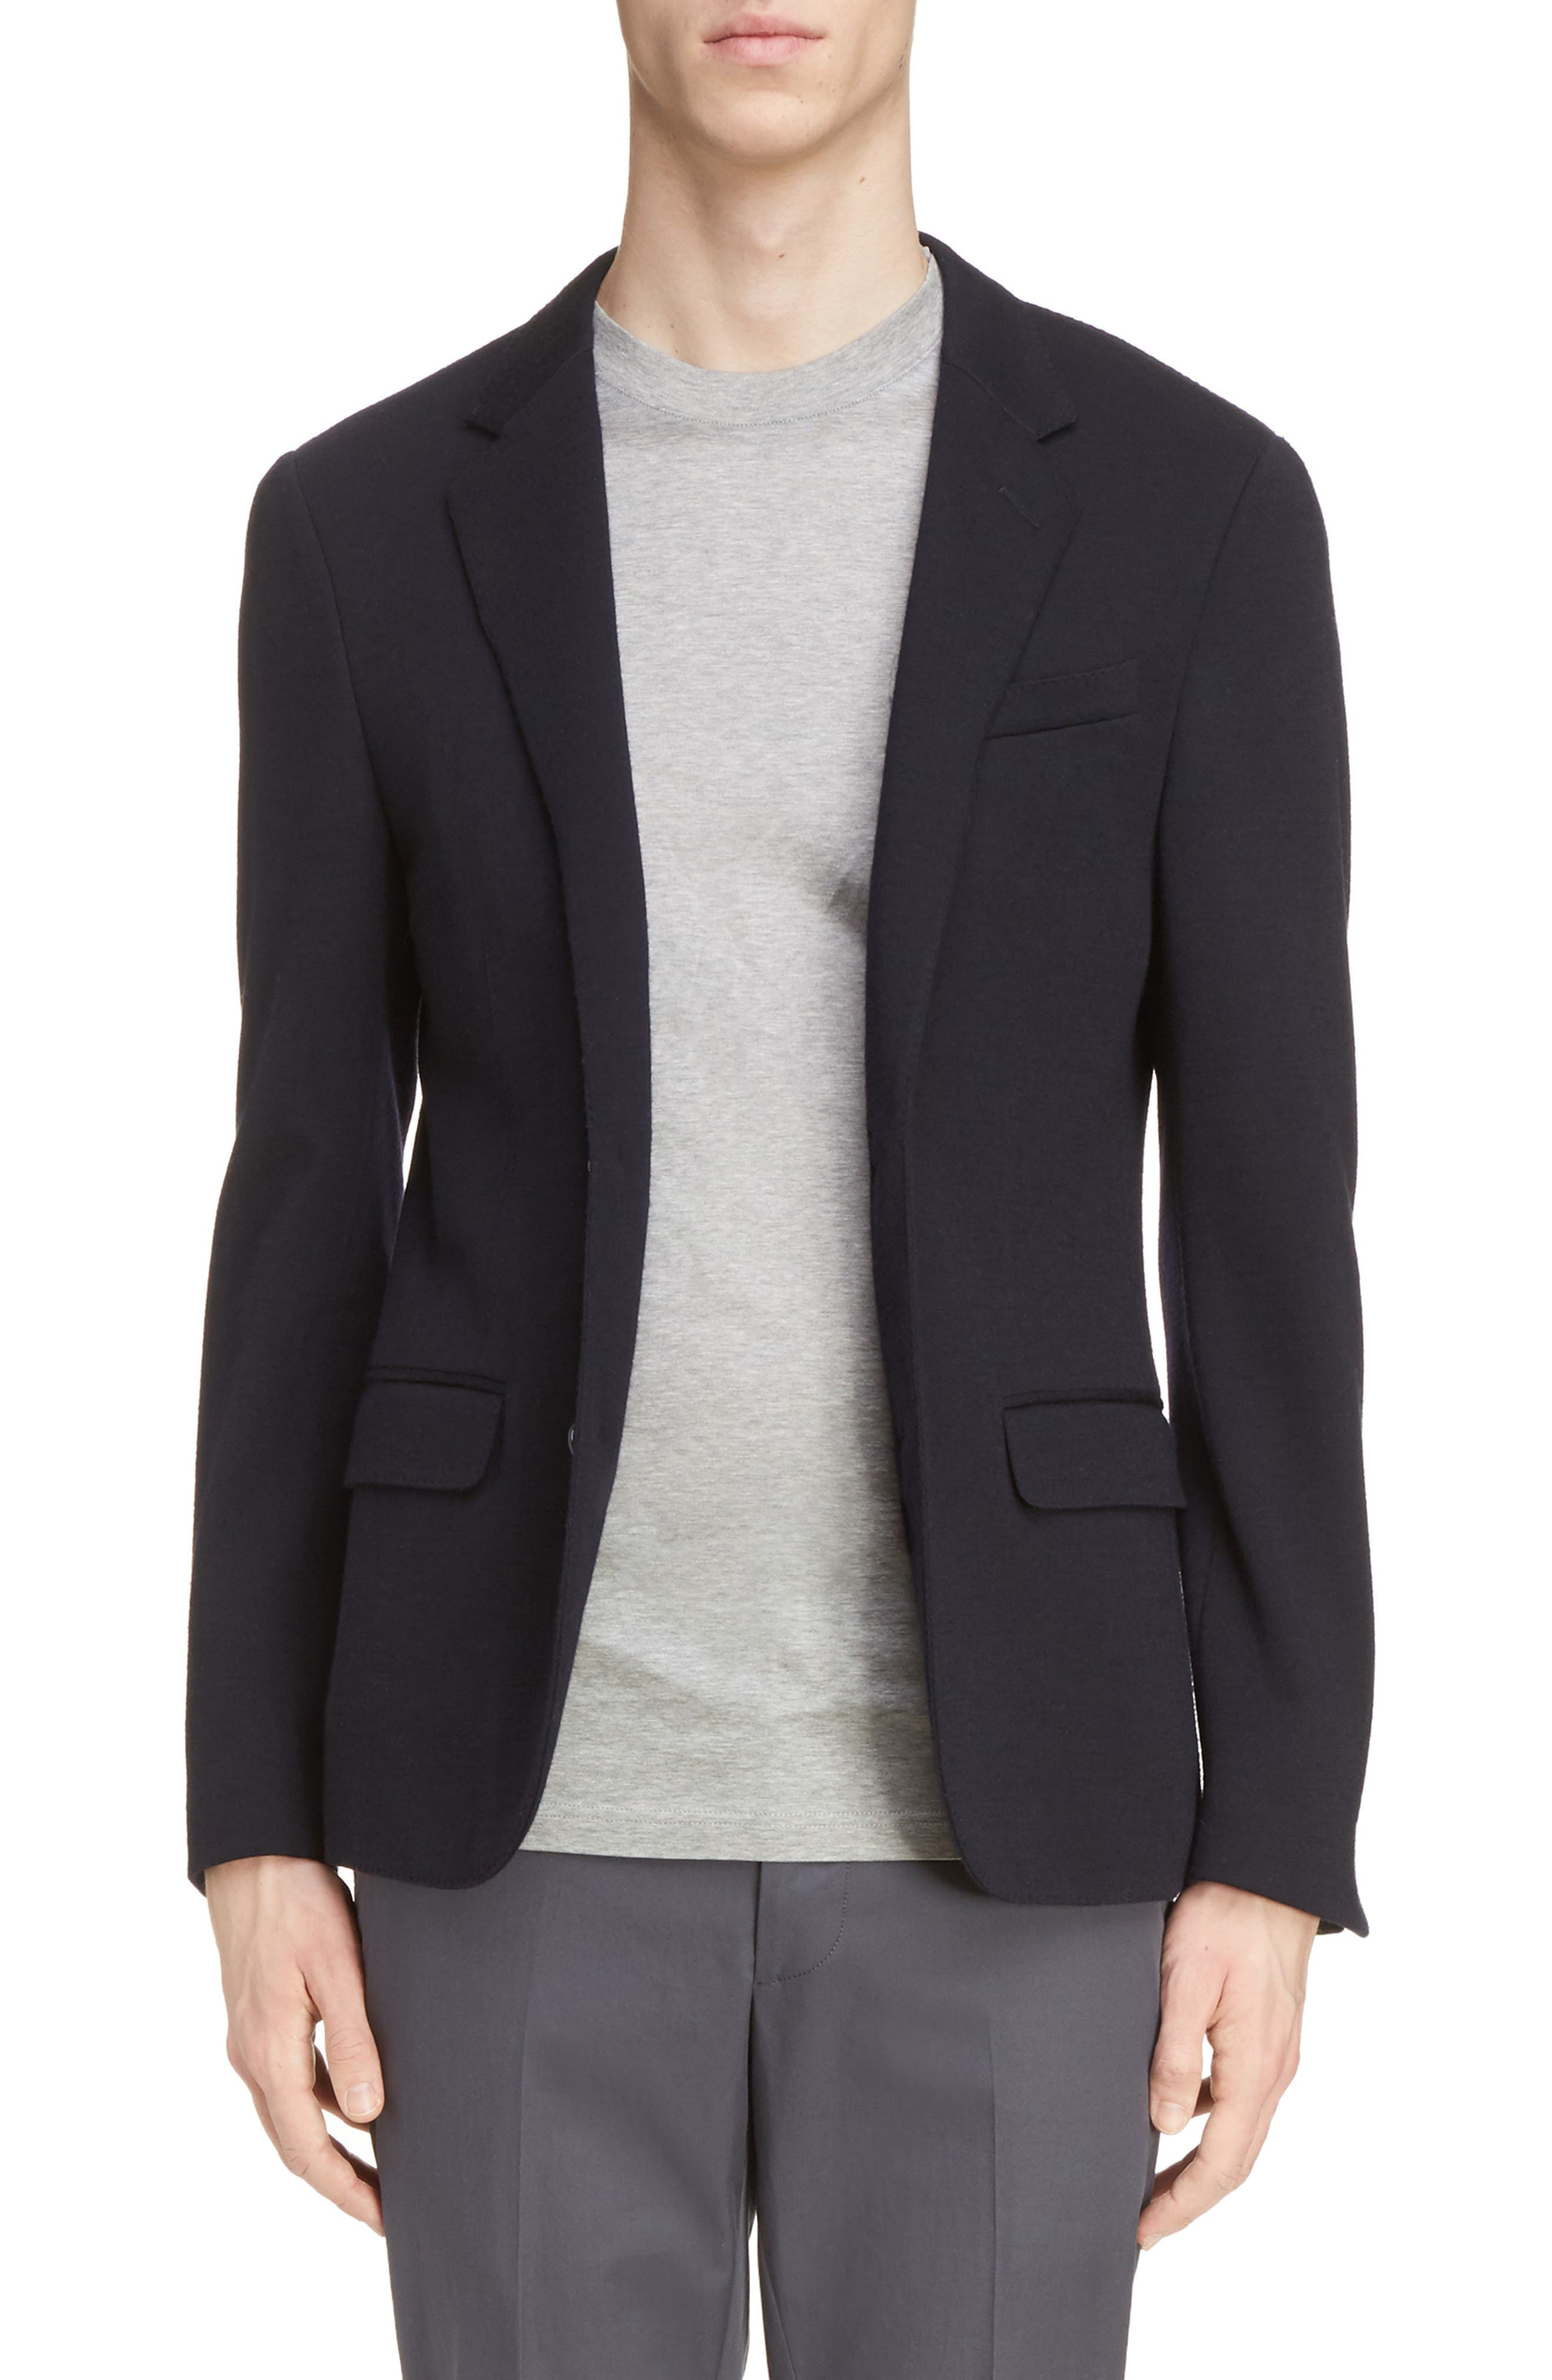 Wool Blend Jersey Jacket,                         Main,                         color, Navy